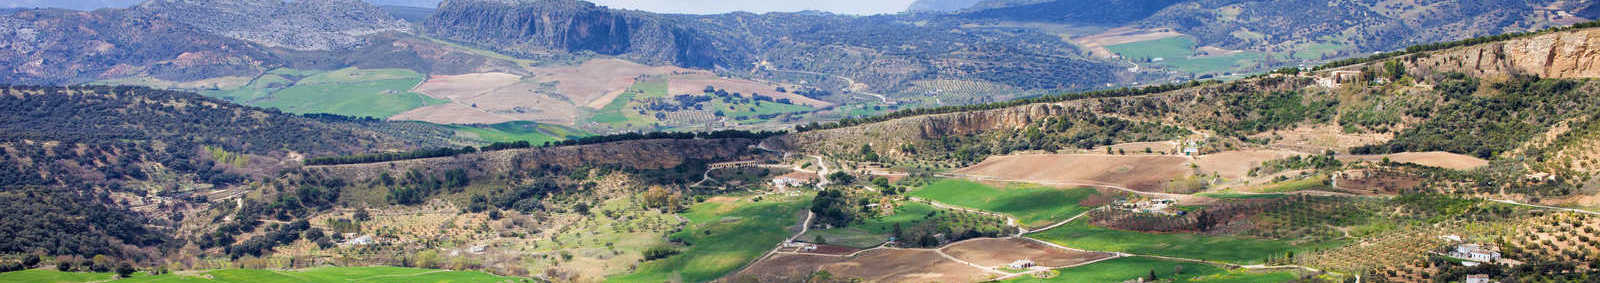 andaluician countryside